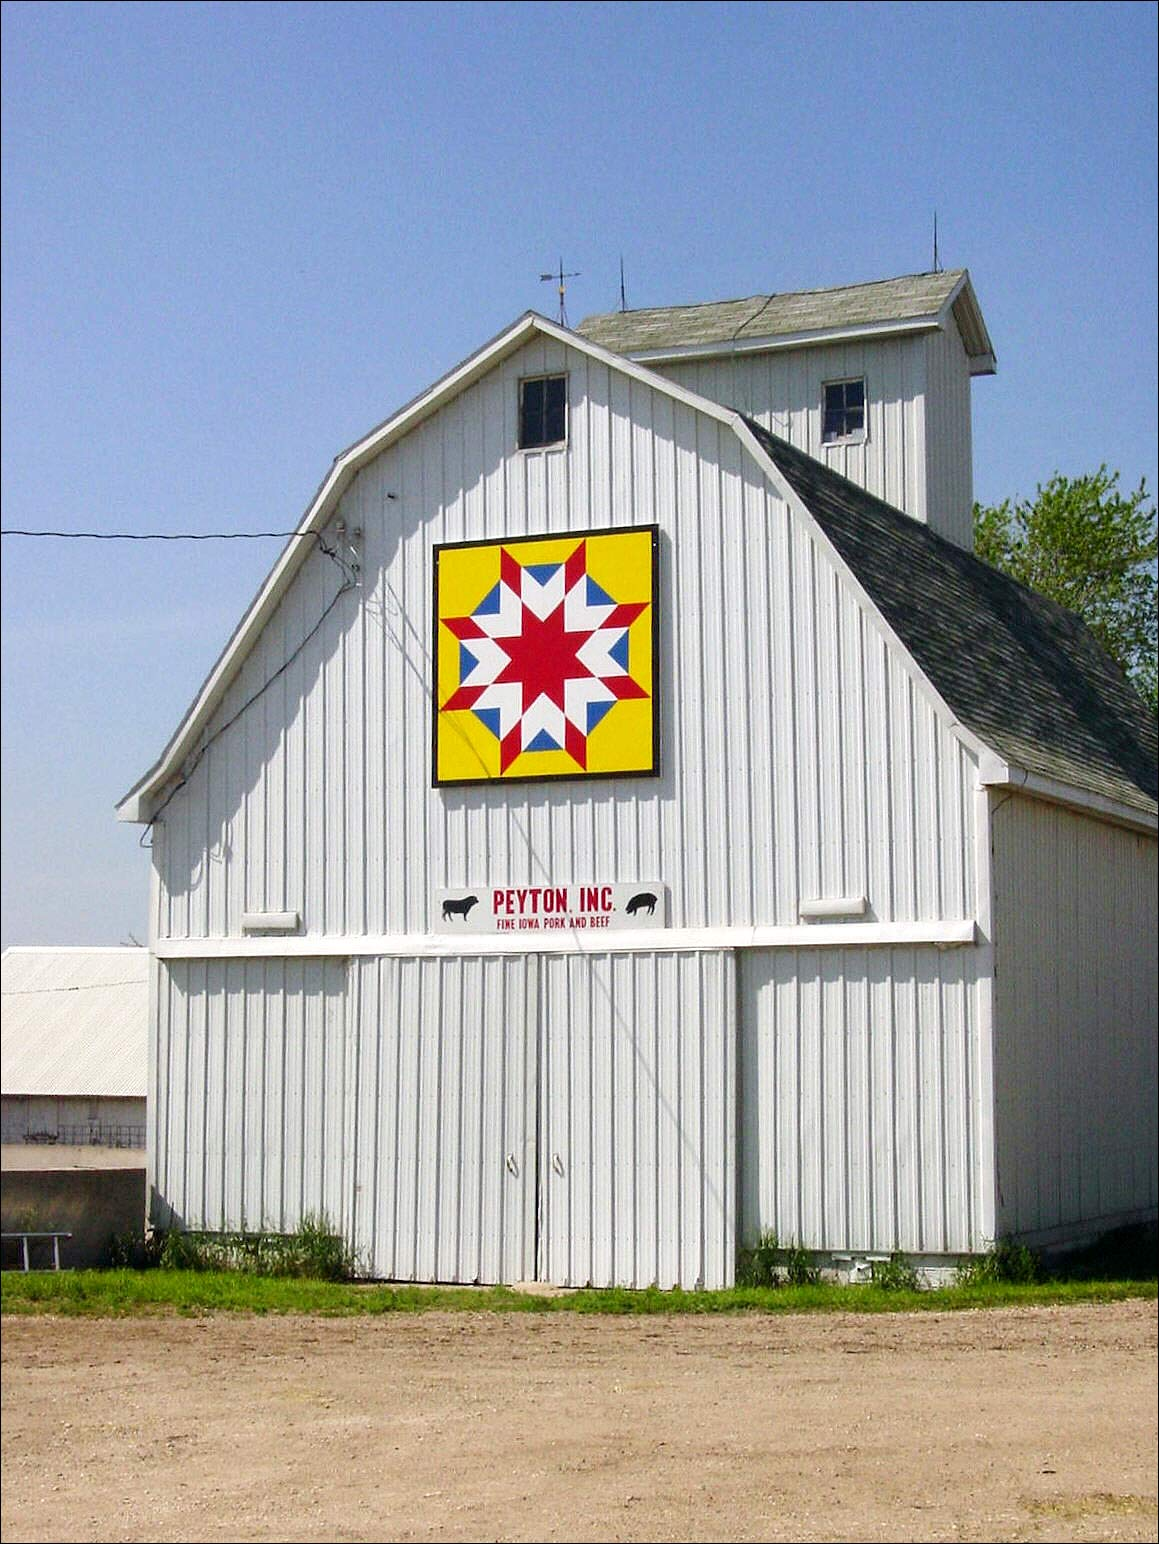 Barn quilt in Iowa - via barnquilts.com